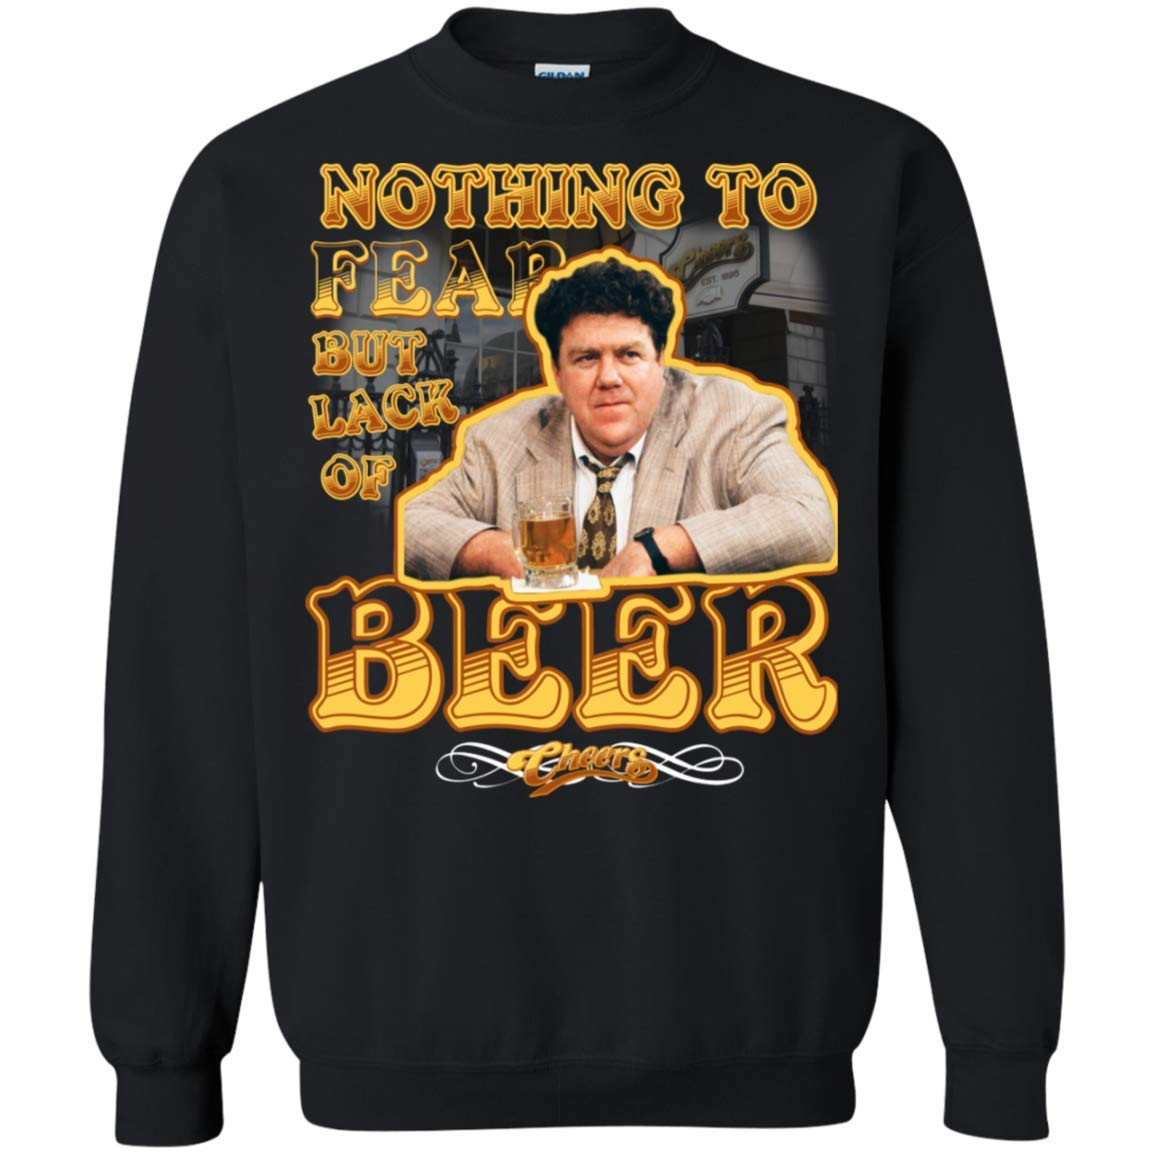 Cheers TV Show Crewneck Pullover Sweatshirt 8 oz.